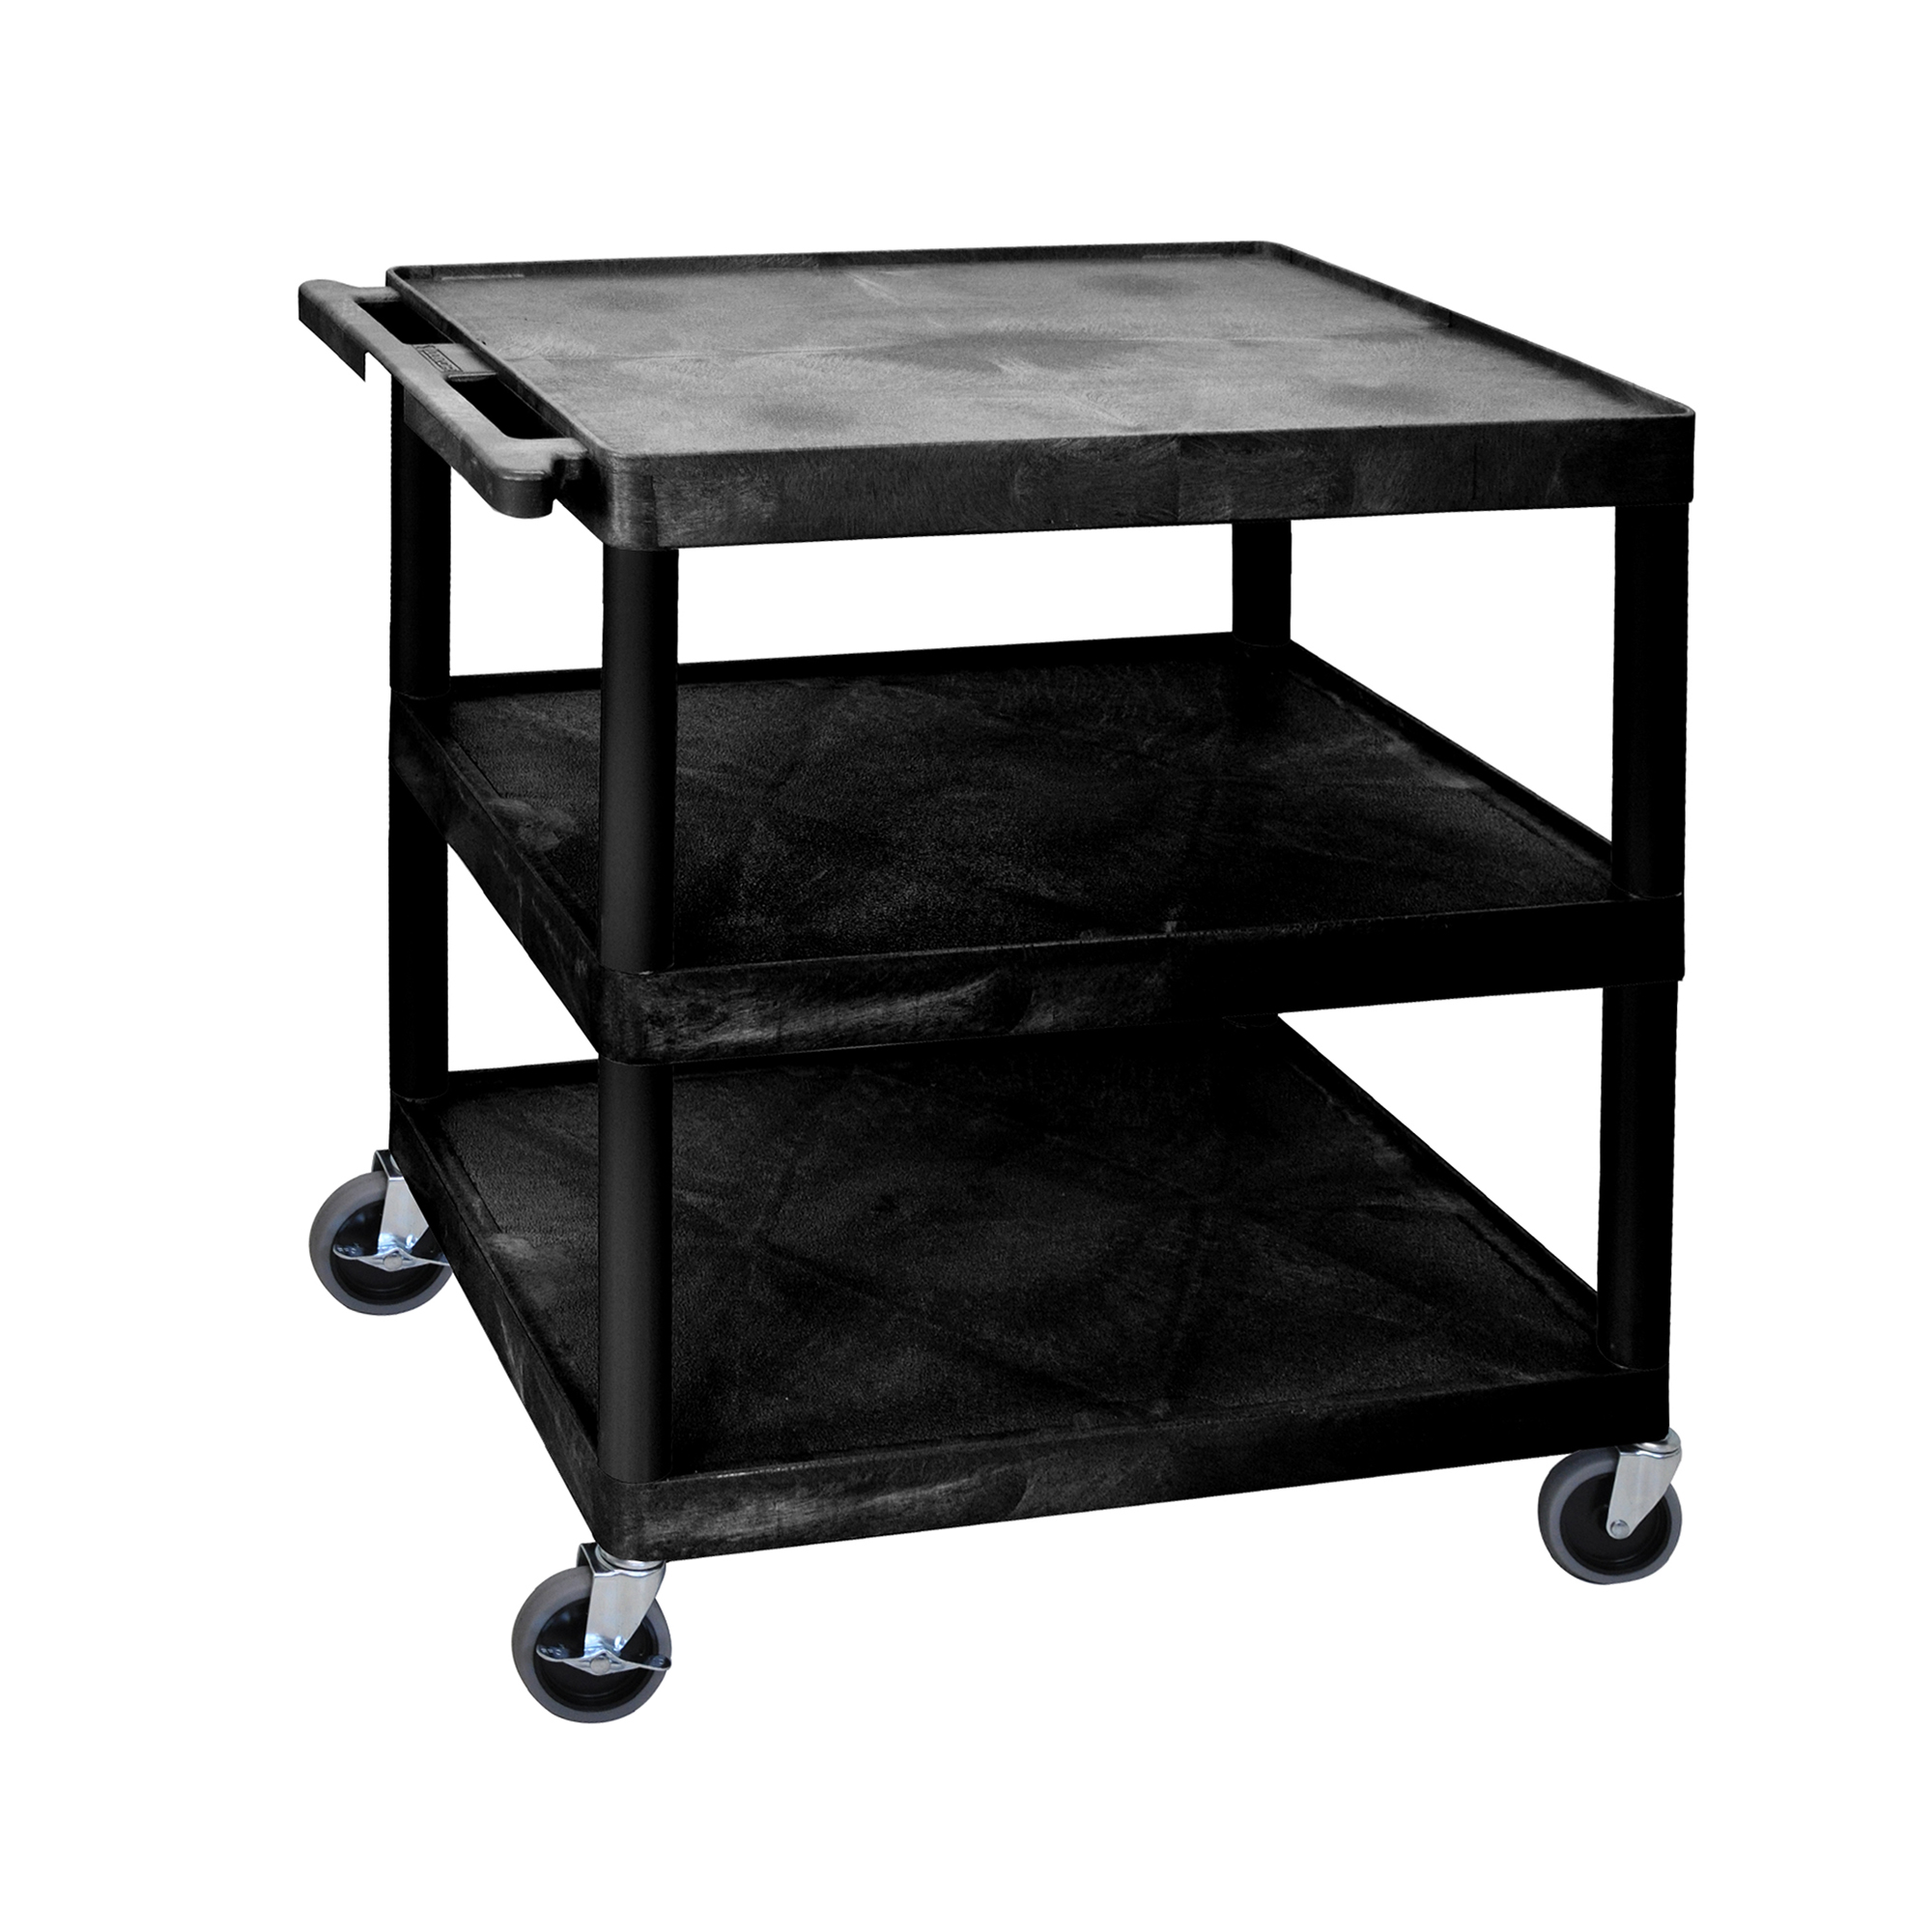 Offex Large Flat Shelf Cart Three Shelves